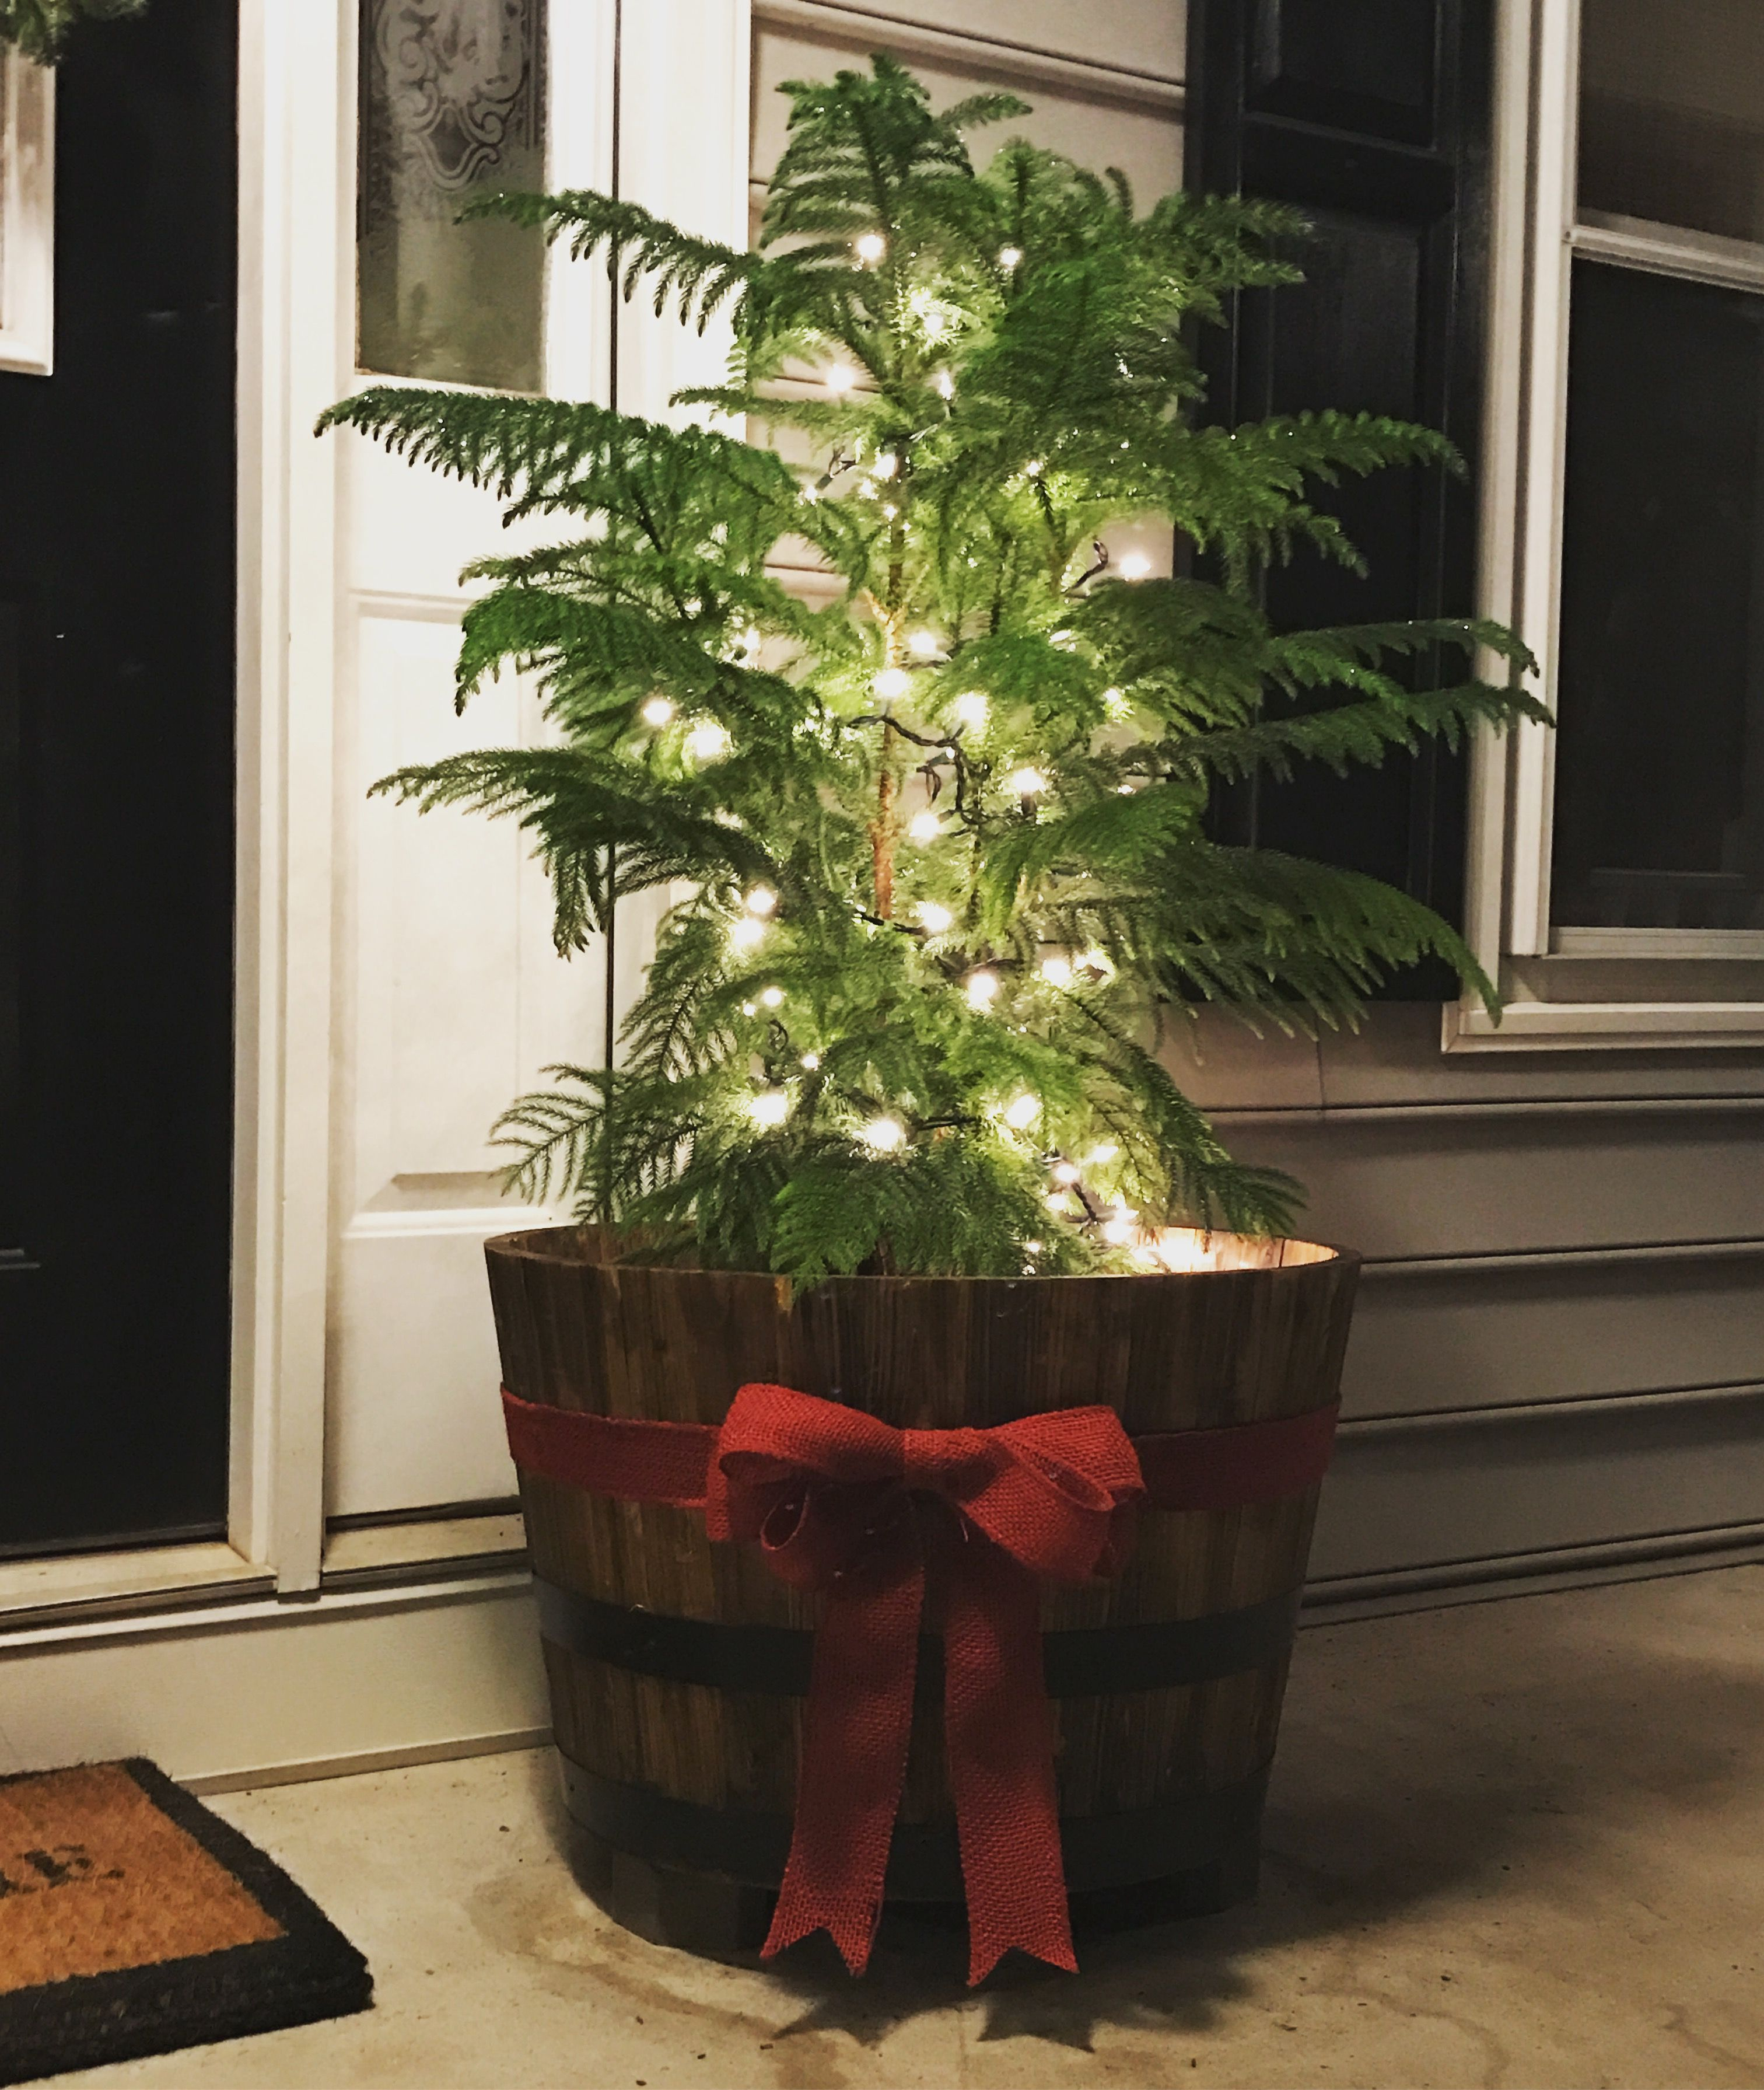 Norfolk Island Pine From Lowes For 17perfect For My Front Porch